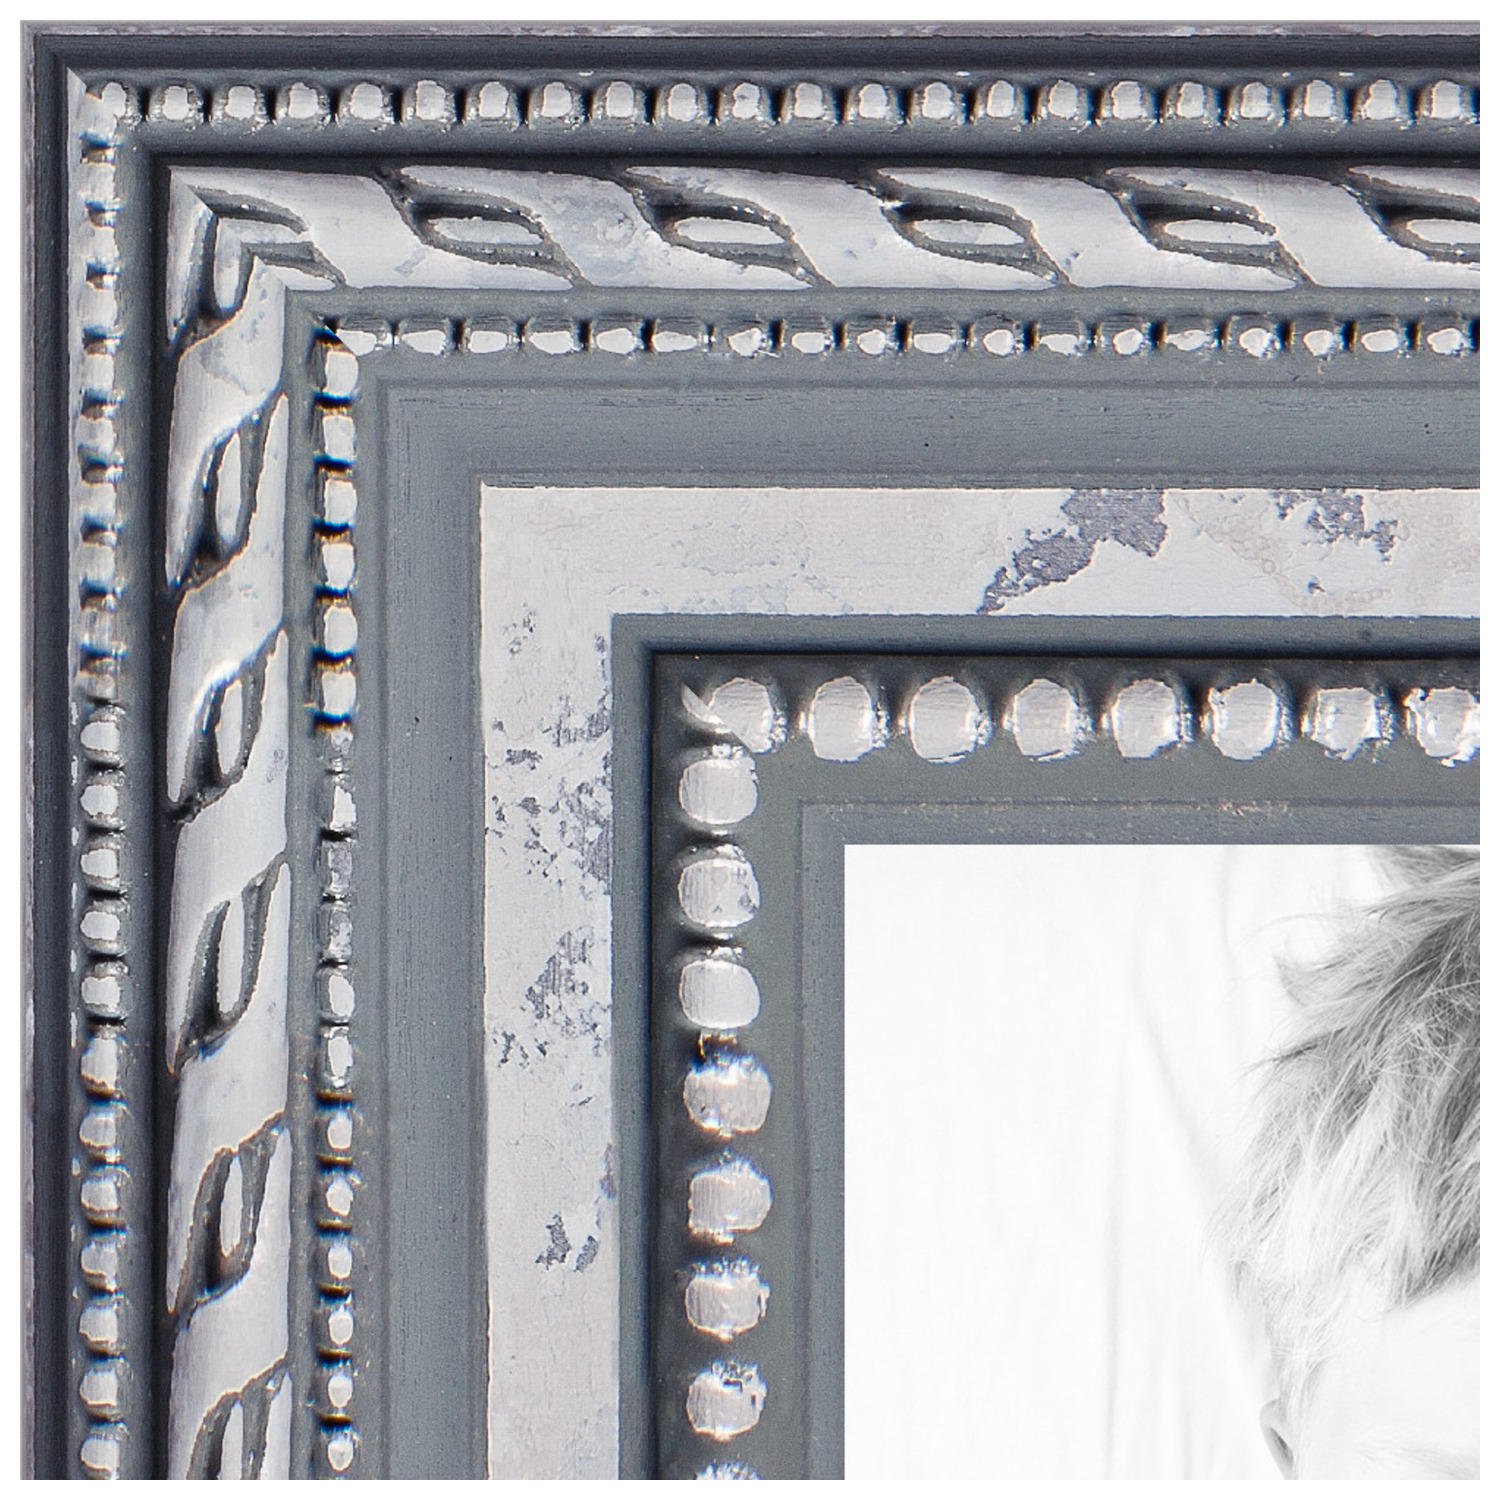 arttoframes 20x24 inch silver picture frame this silver wood poster frame is great for your art or photos comes with 060 plexi glass 4319